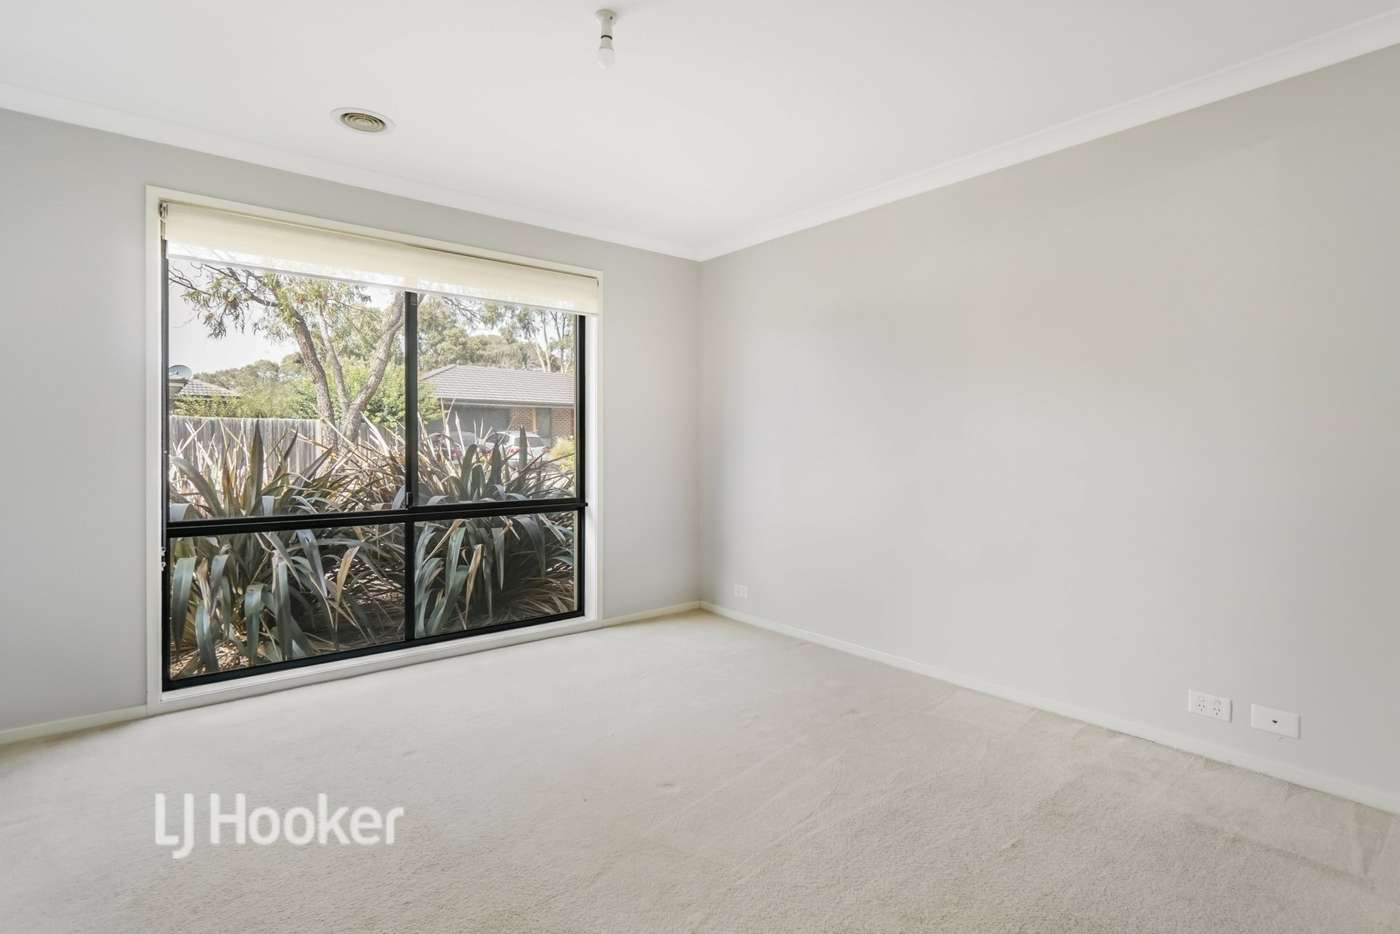 Fifth view of Homely house listing, 15 Kruger Street, Mernda VIC 3754